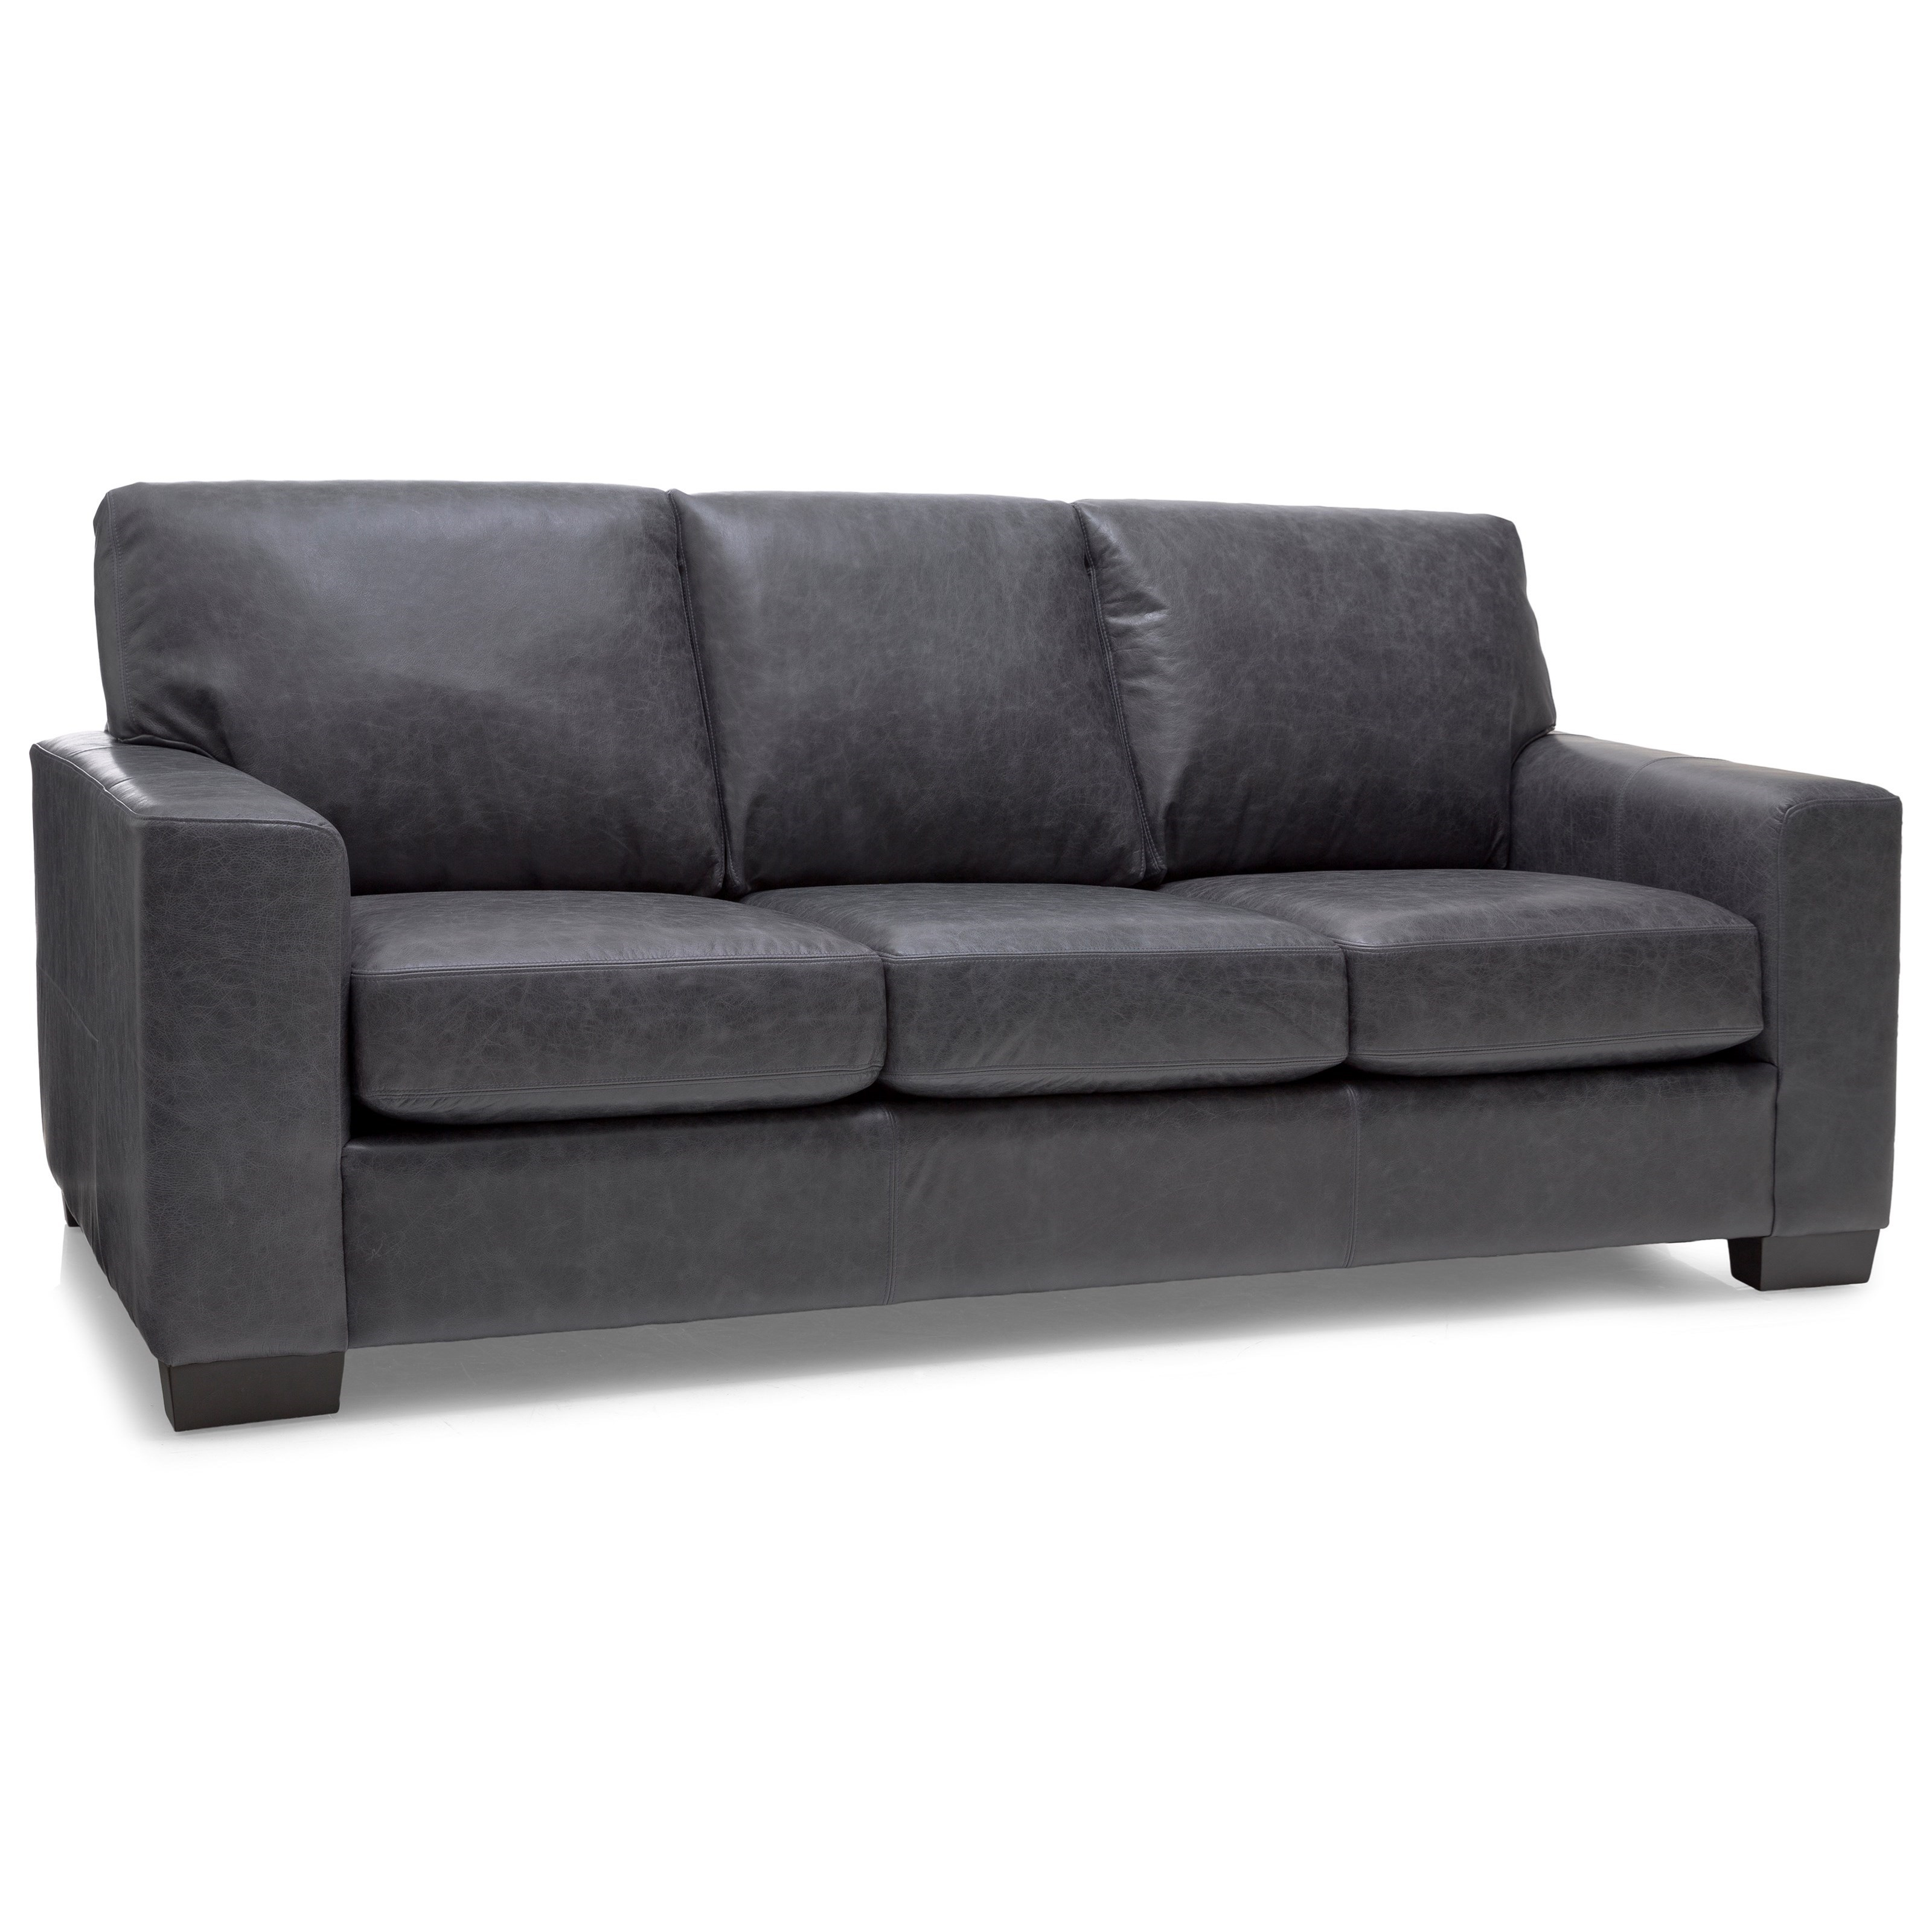 3483 Sofa by Decor-Rest at Stoney Creek Furniture